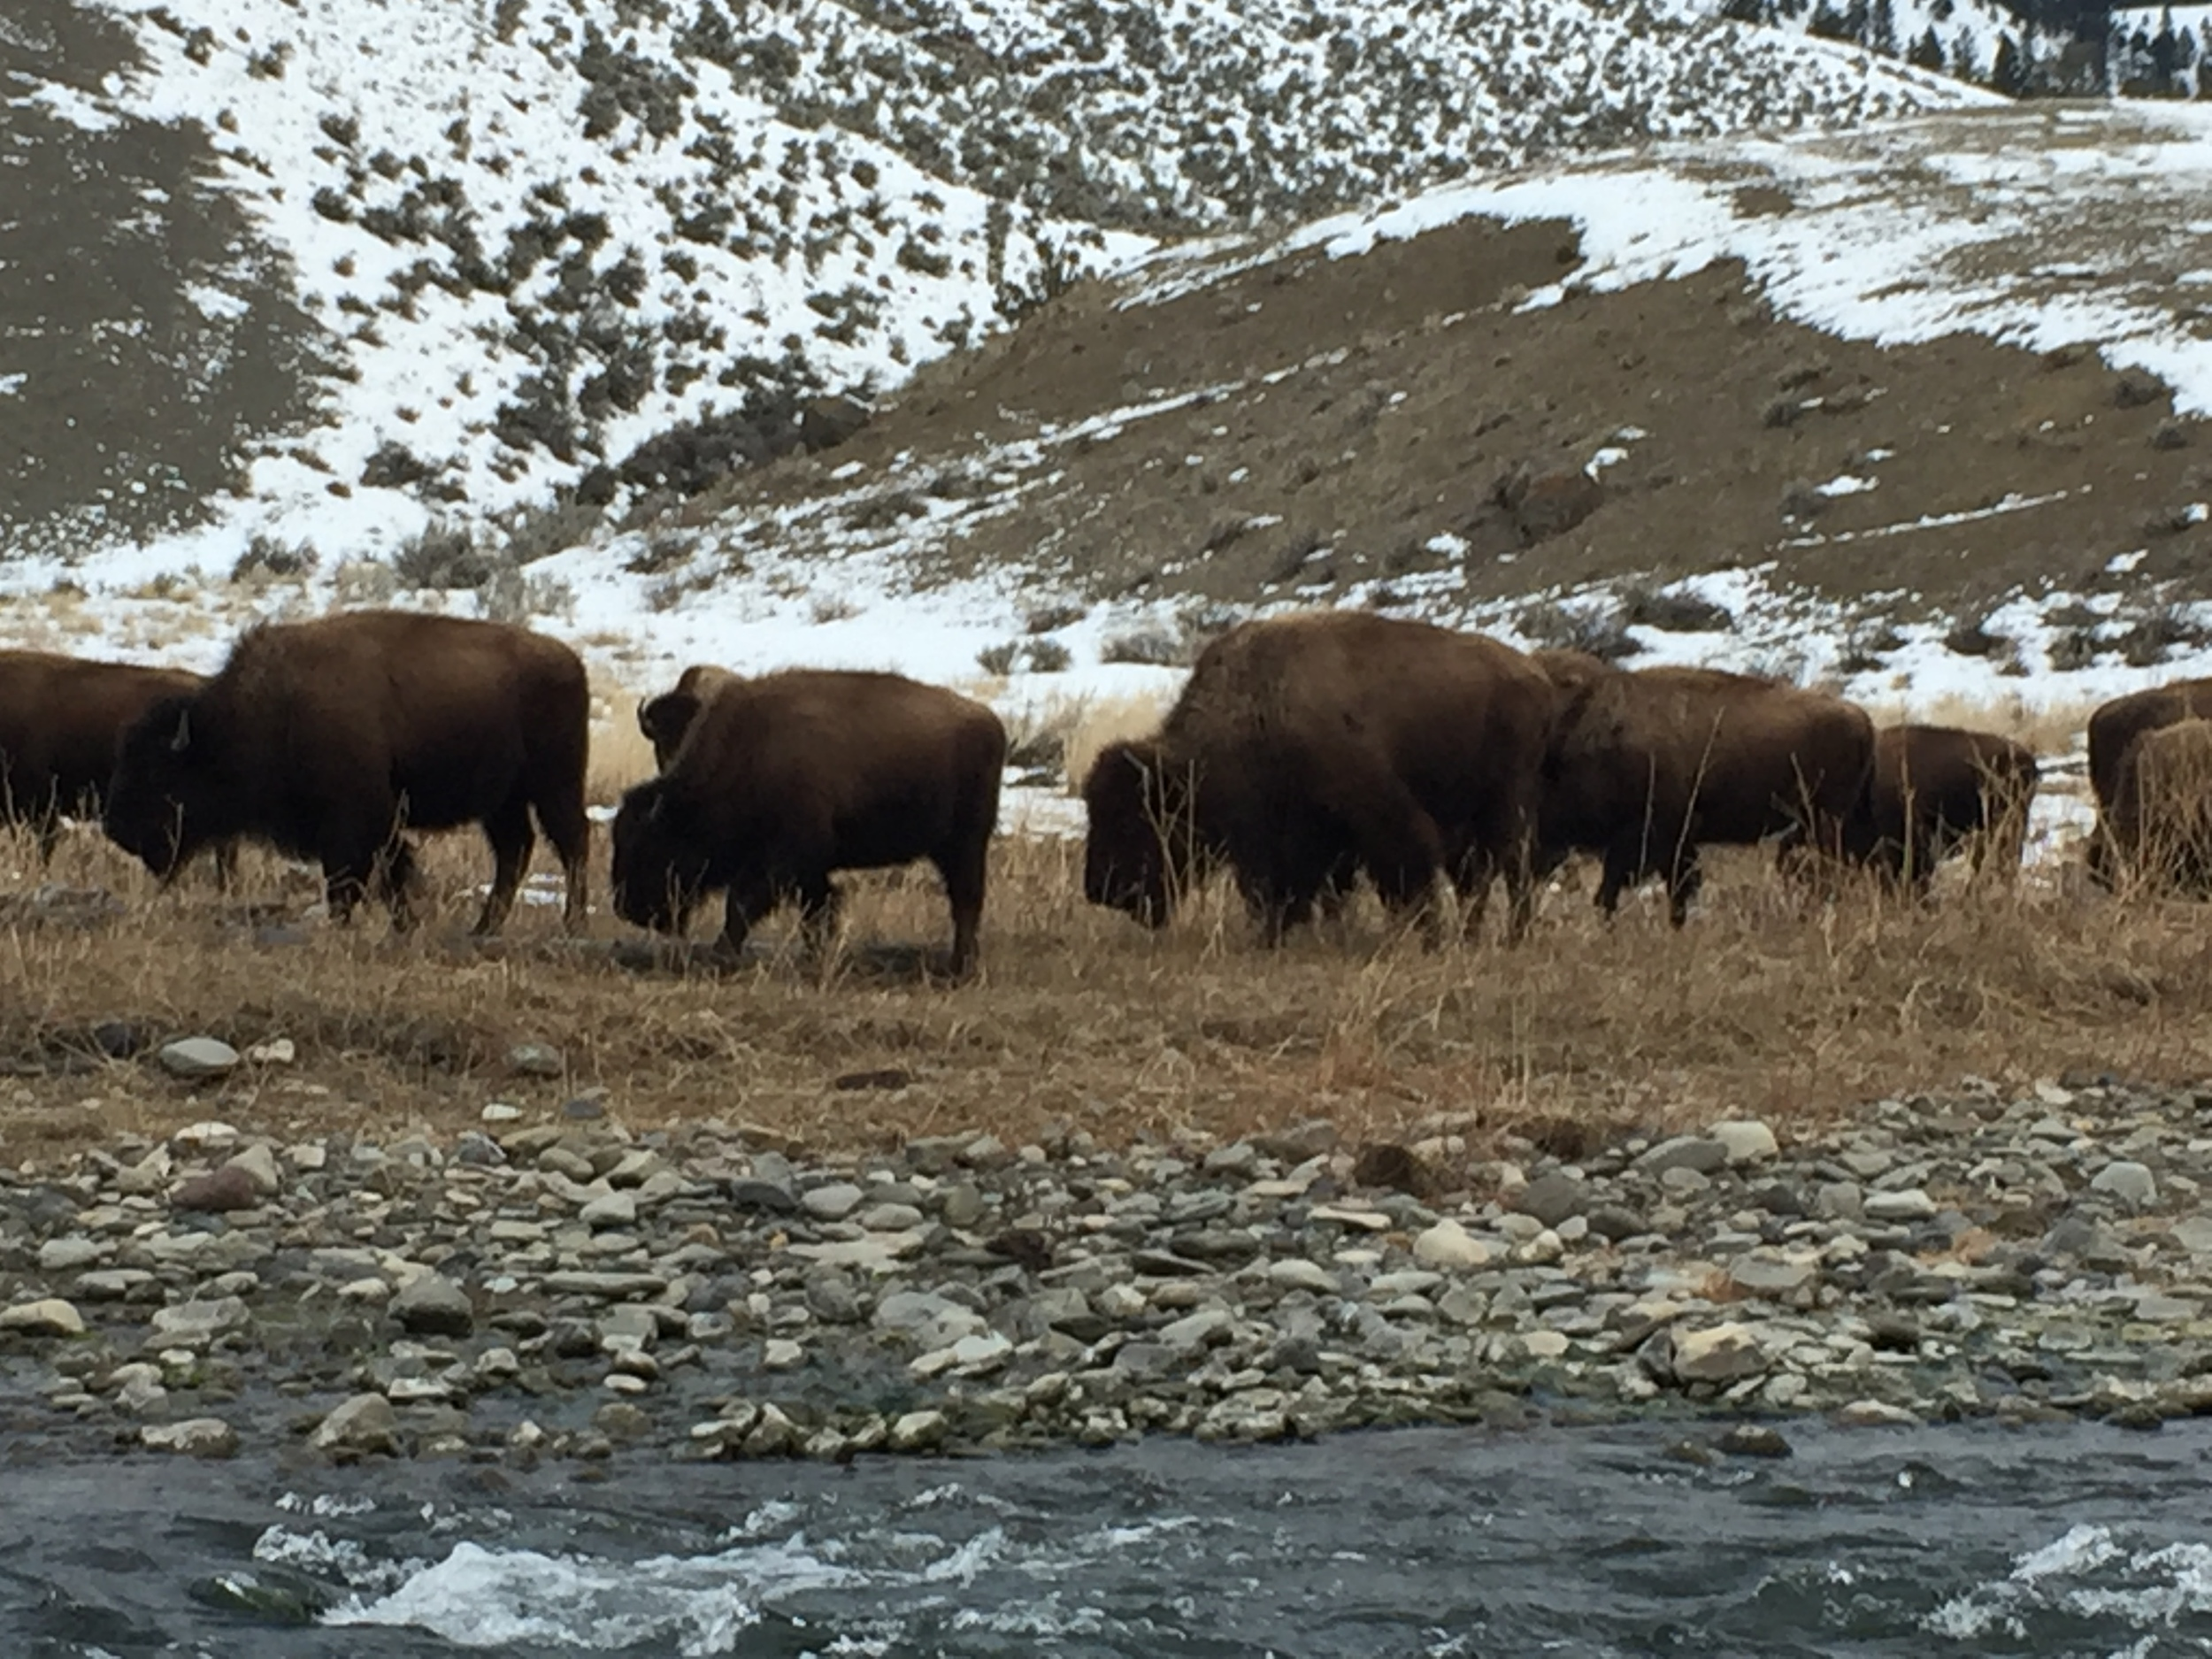 A group of around 20 bison feed next to the Gardiner River in Yellowstone National Park.